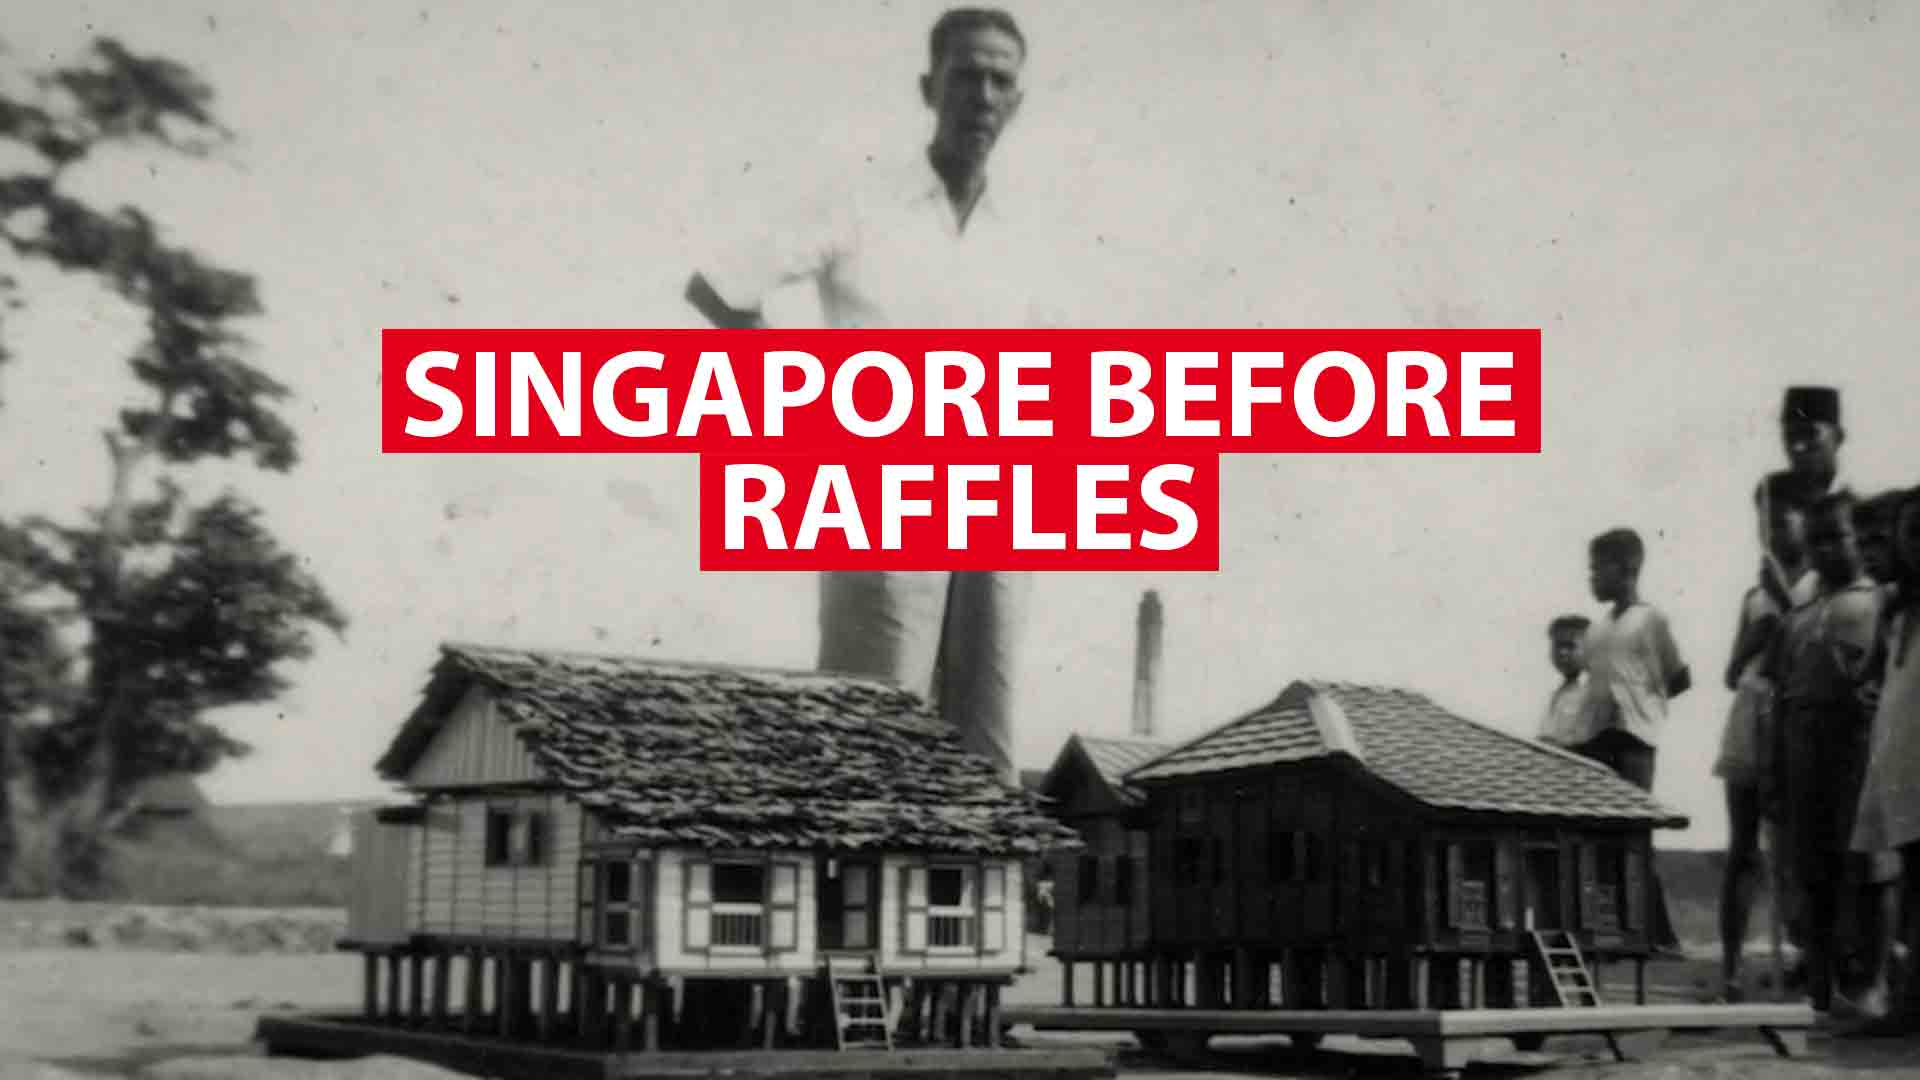 A thriving Singapore - even before Stamford Raffles